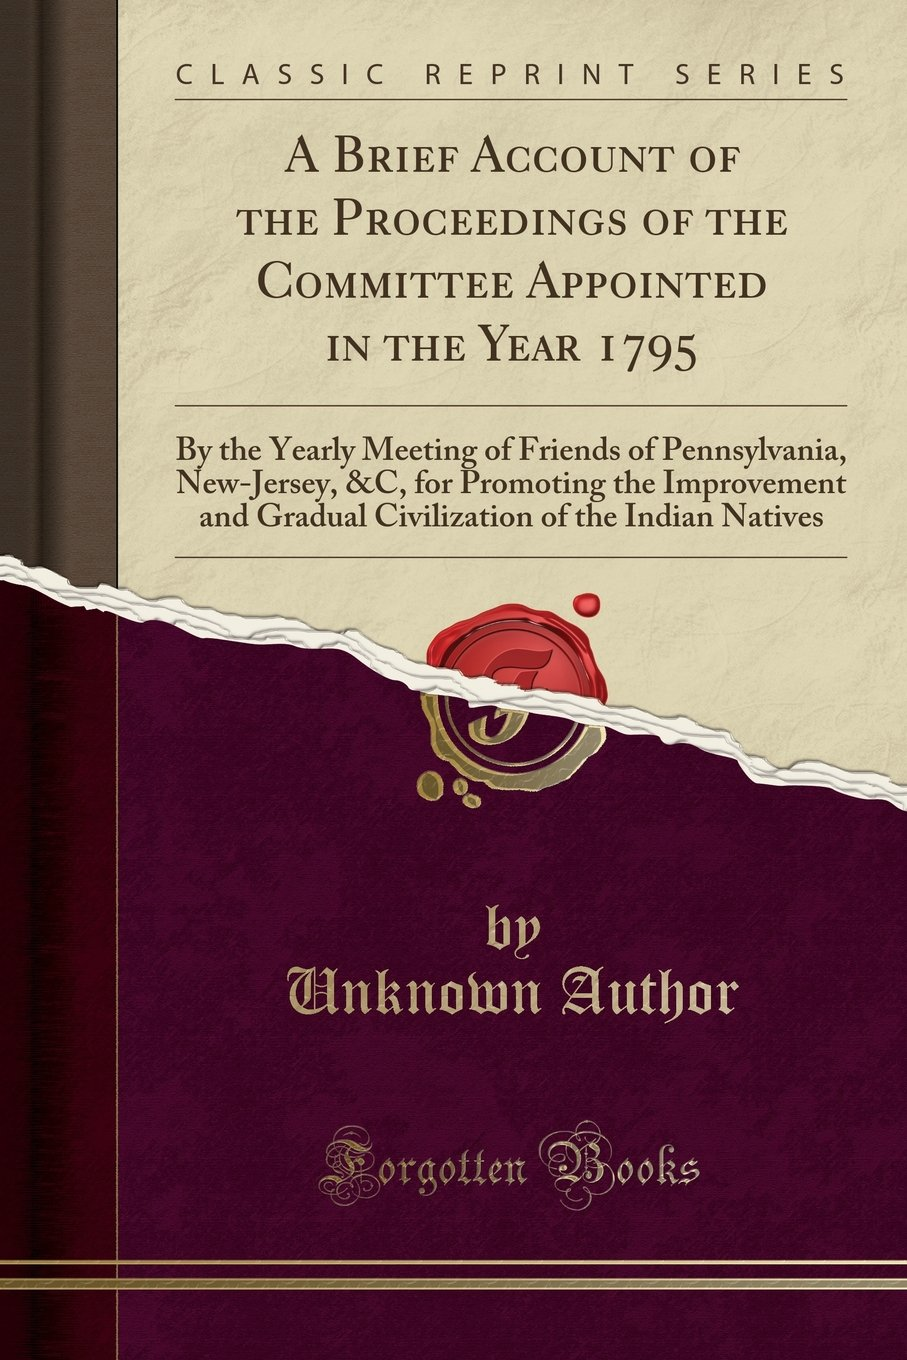 A Brief Account of the Proceedings of the Committee Appointed in the Year 1795: By the Yearly Meeting of Friends of Pennsylvania, New-Jersey, &C, for ... of the Indian Natives (Classic Reprint) pdf